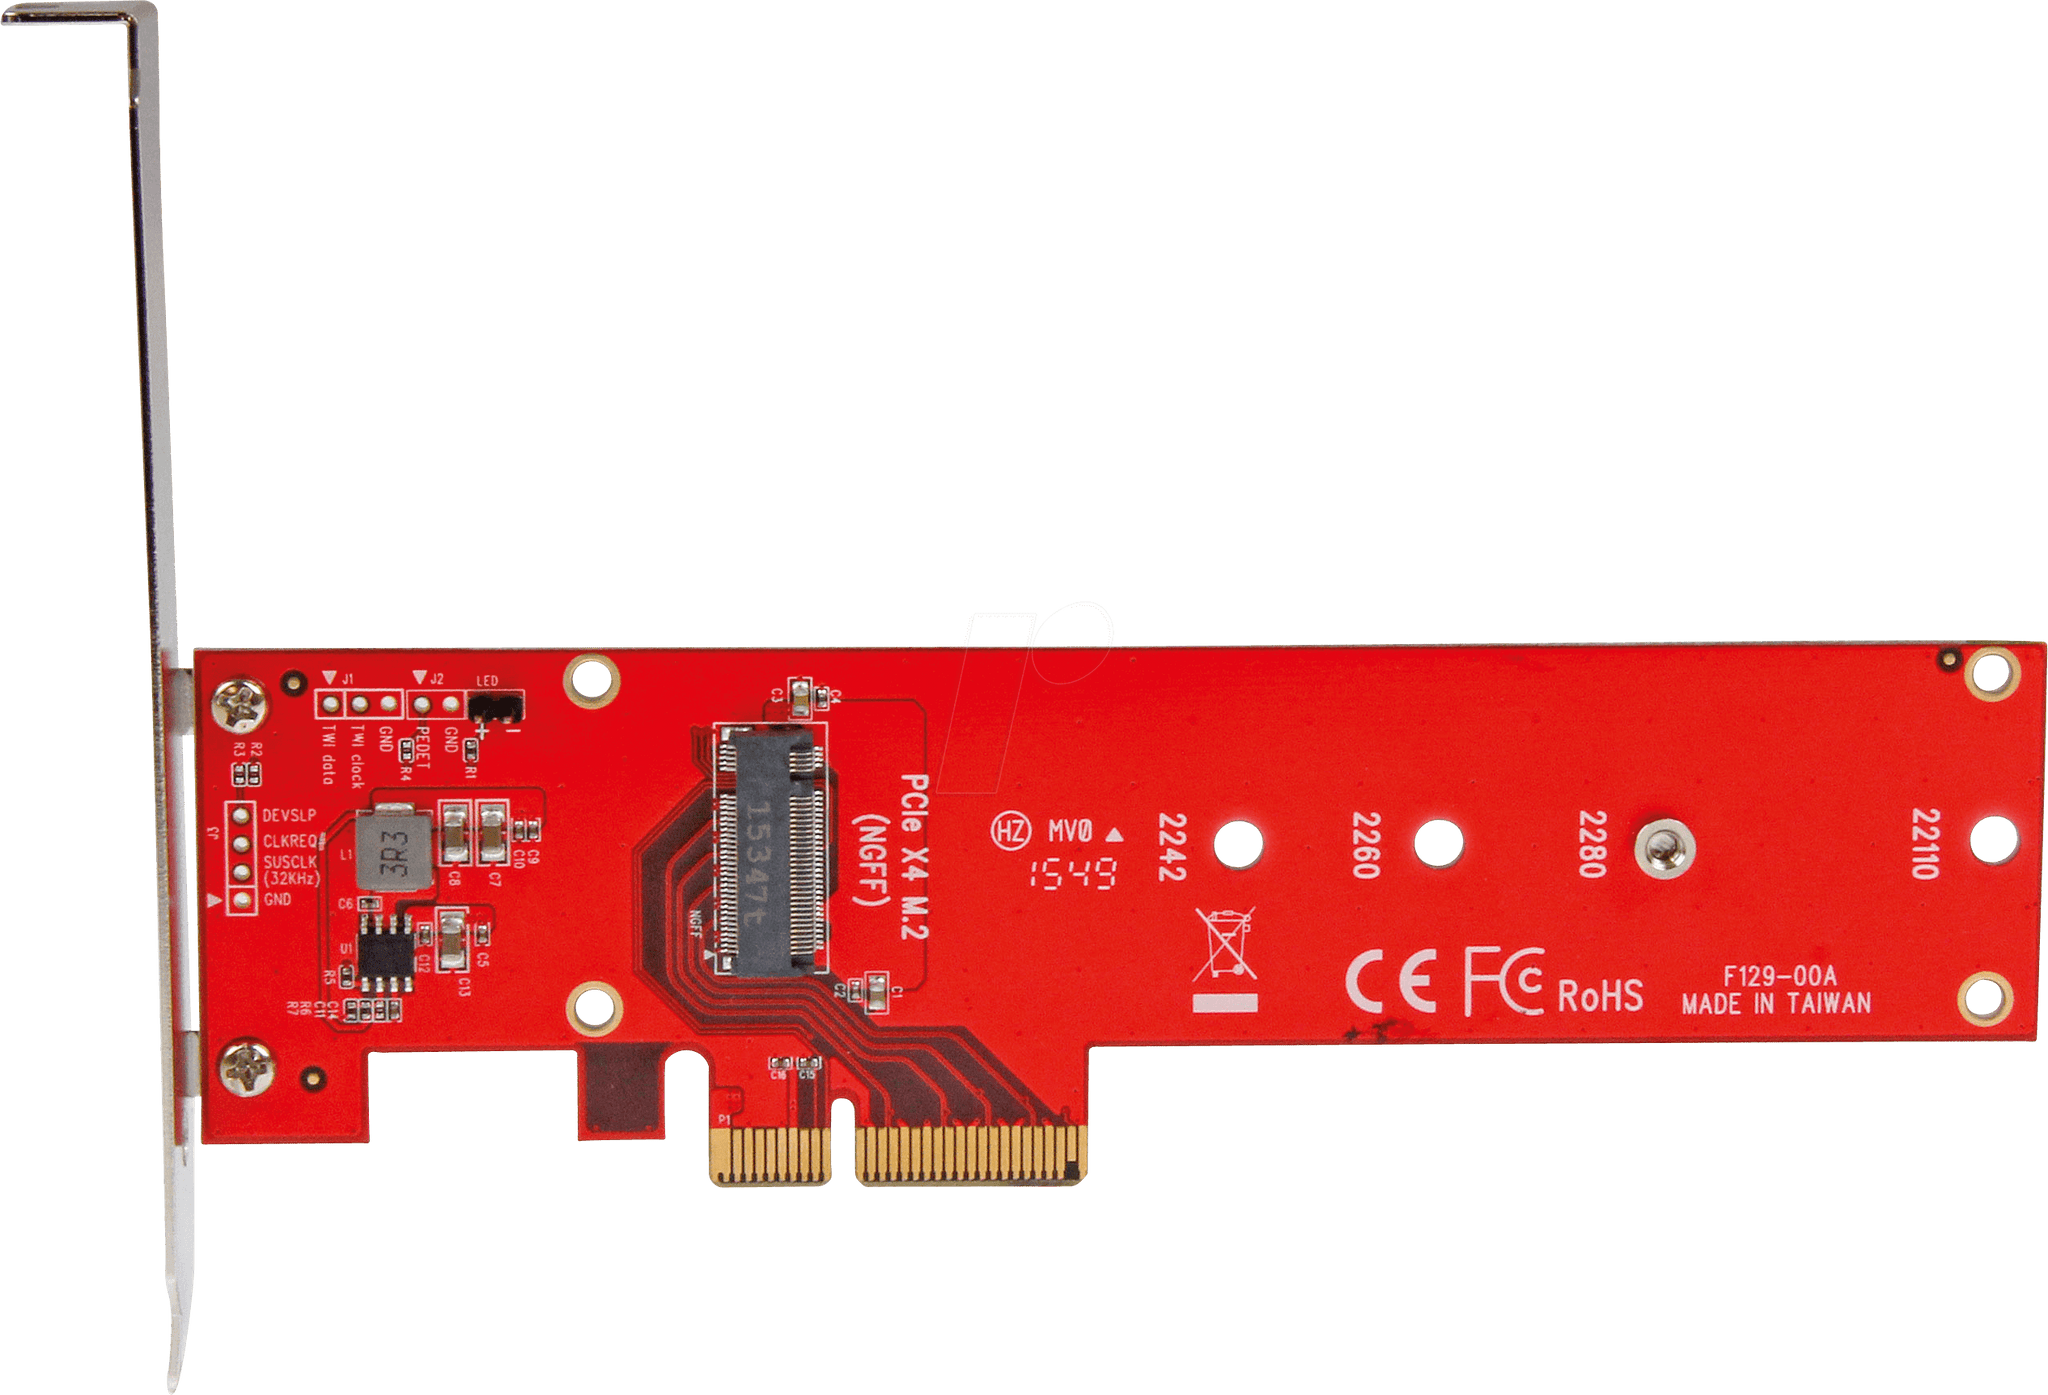 StarTech.com x4 PCI Express to M.2 PCIe SSD Adapter - M.2 NGFF SSD (NVMe or AHCI) Adapter Card